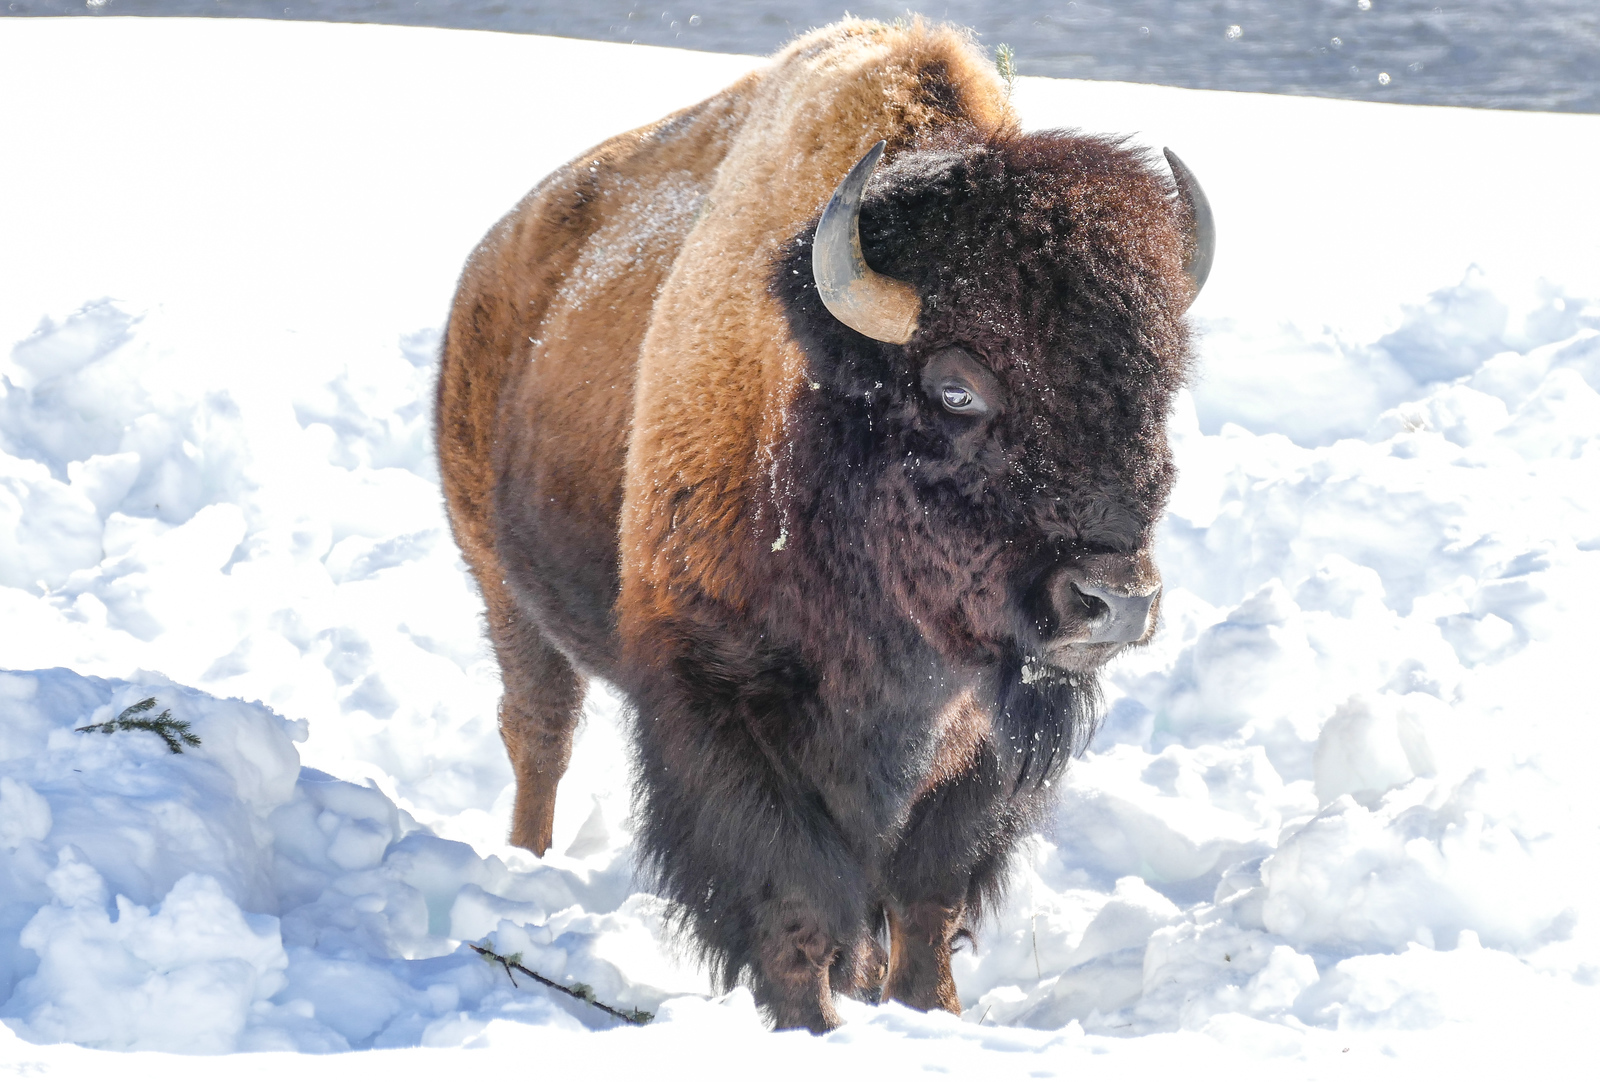 A bison in the snow at Yellowstone National Park.